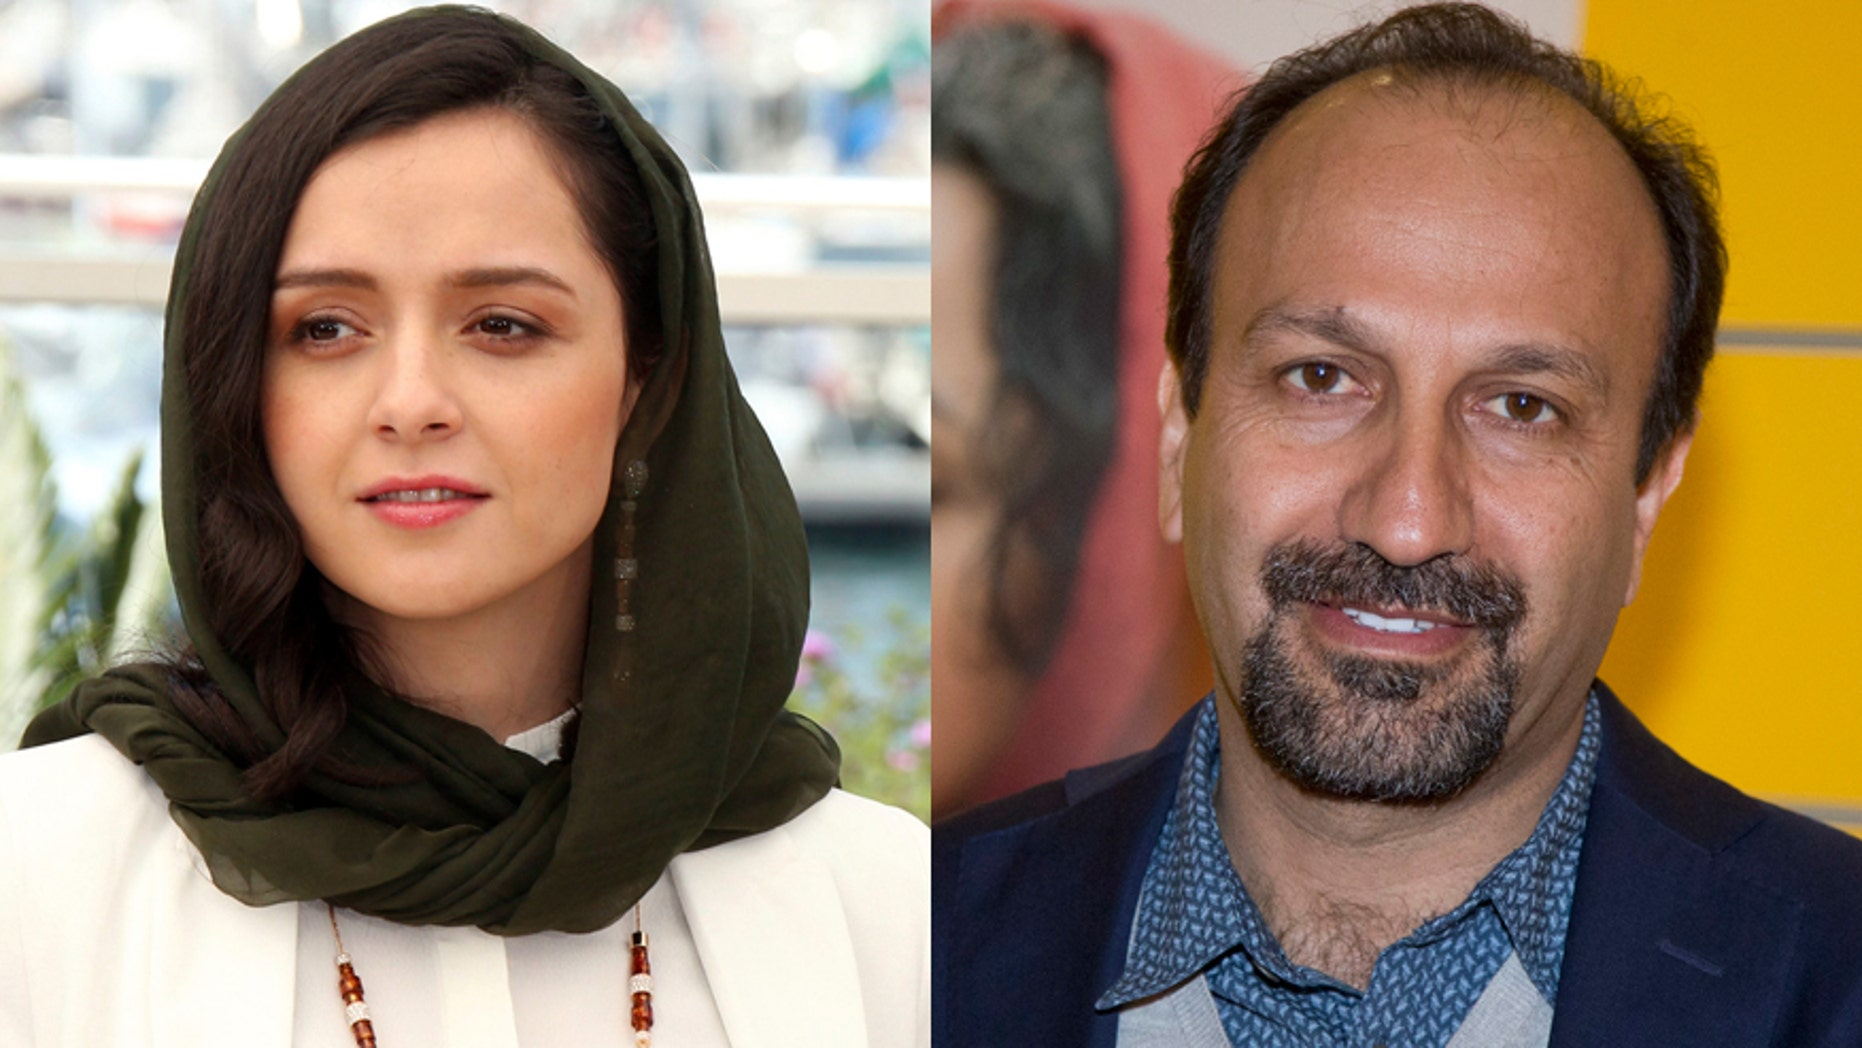 Taraneh Alidoosti, left, and Asghar Farhadi say the won't attend the Oscars due to the travel order.